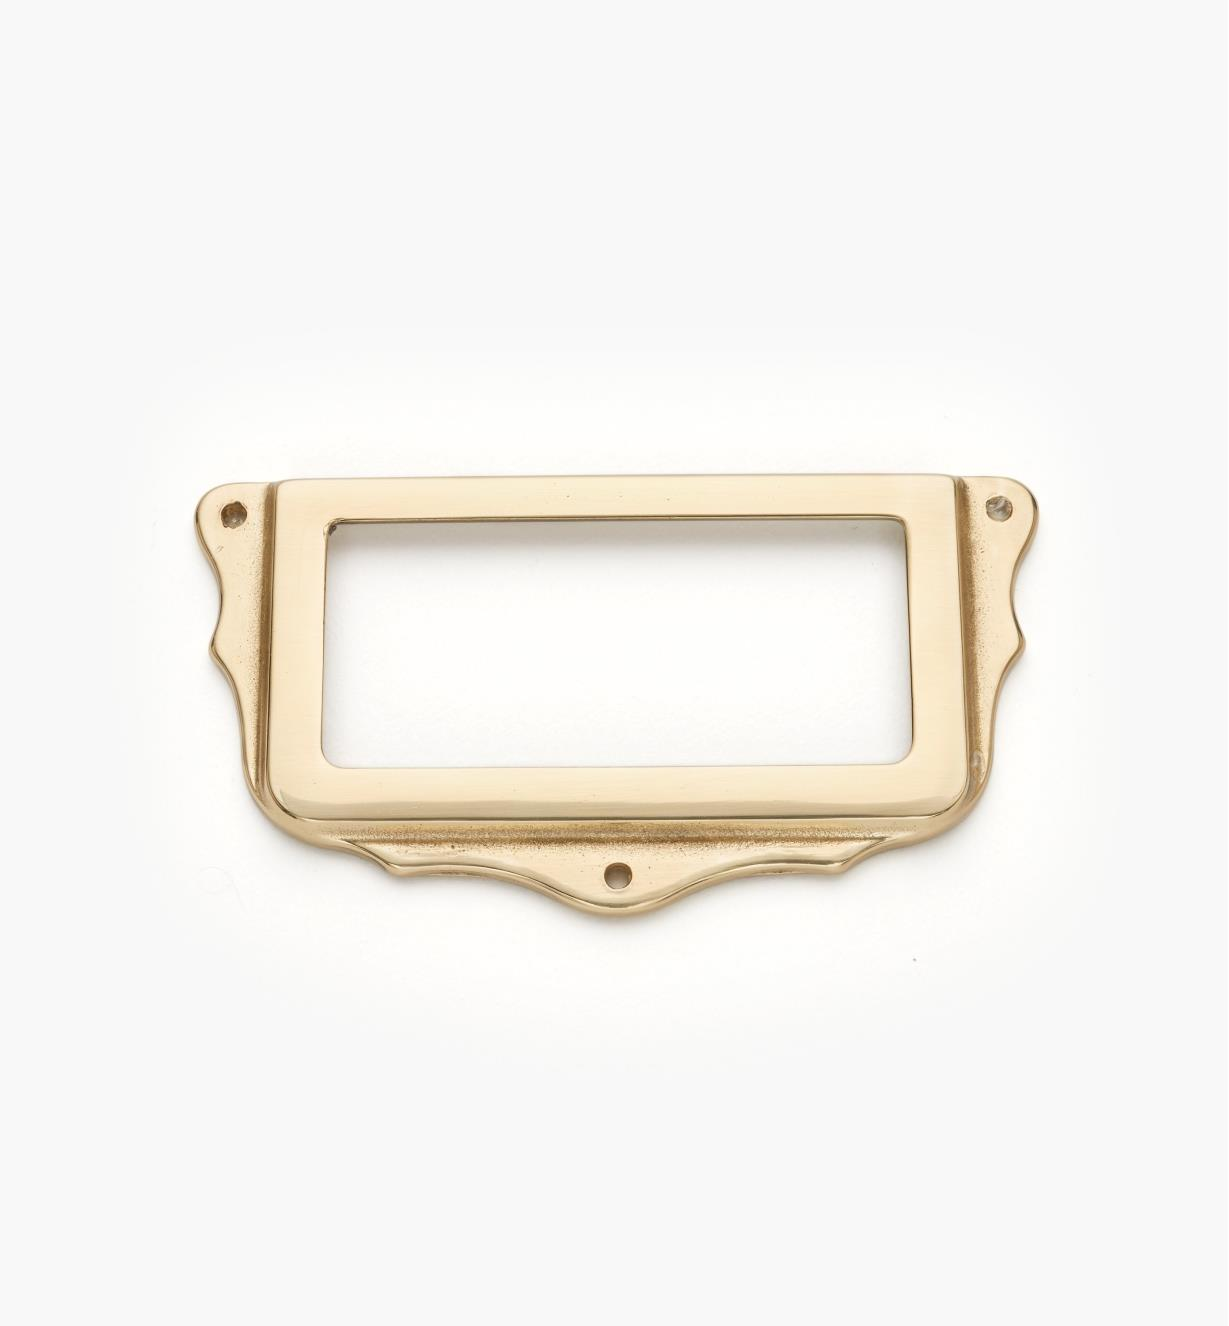 01A5763 - Polished Brass Card Frame